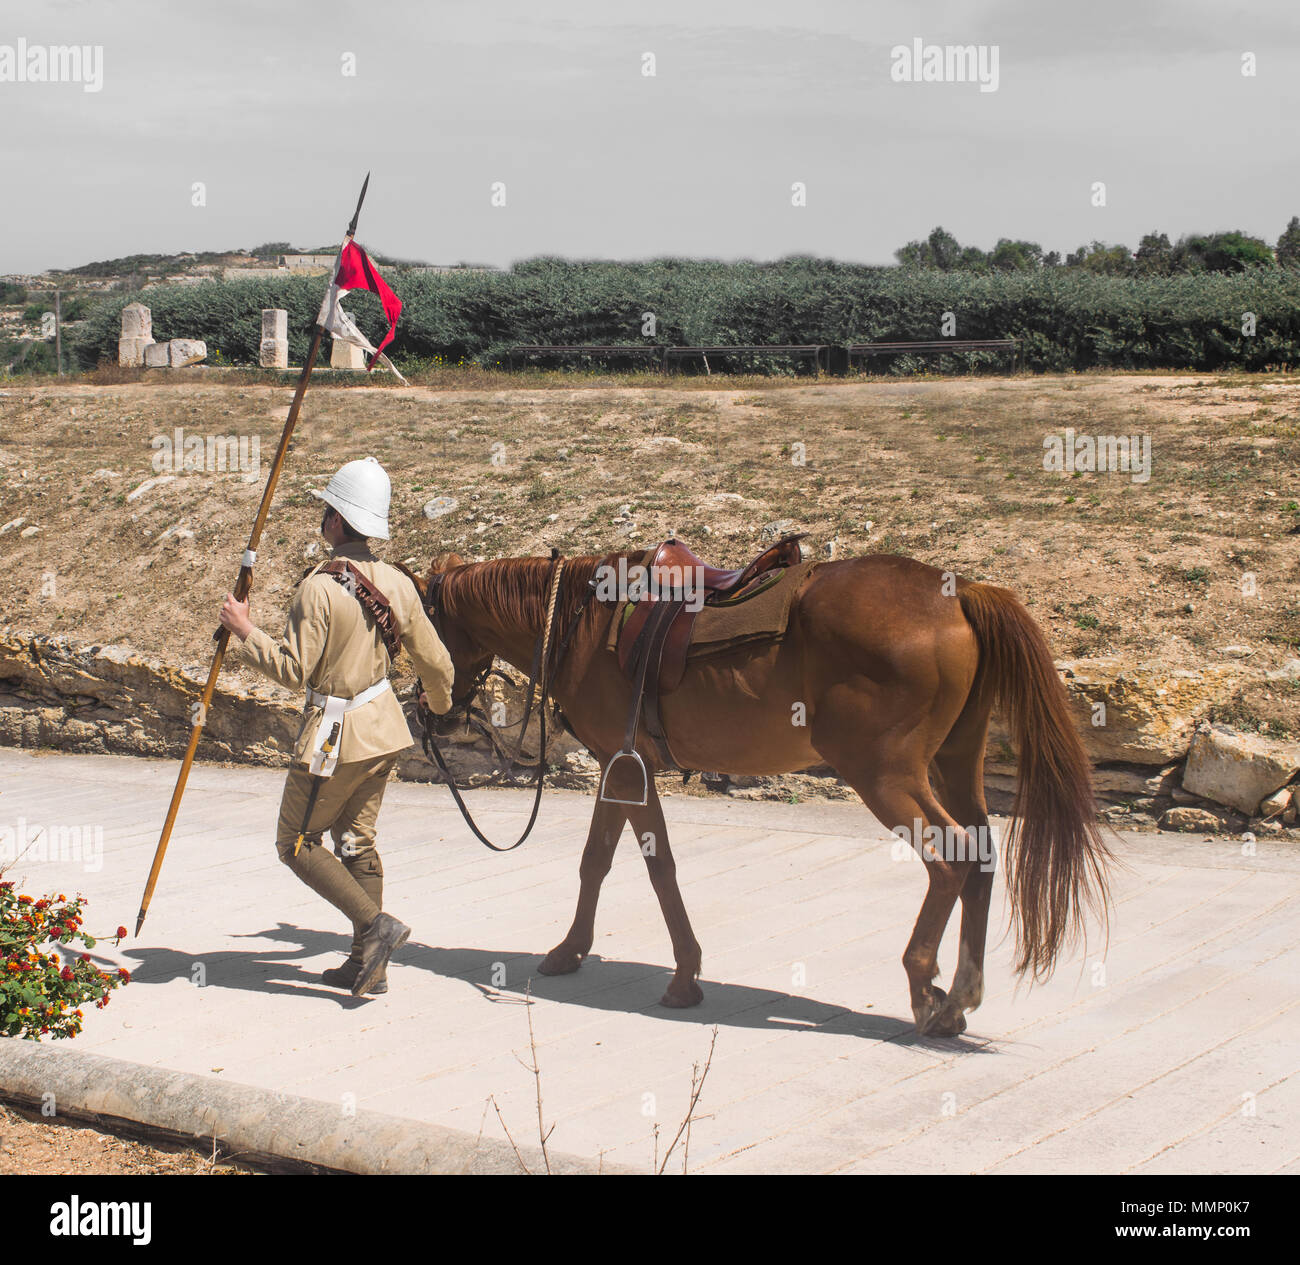 A soldier walking along with his horse symbolizing the cavalry of the Victorian Era. - Stock Image